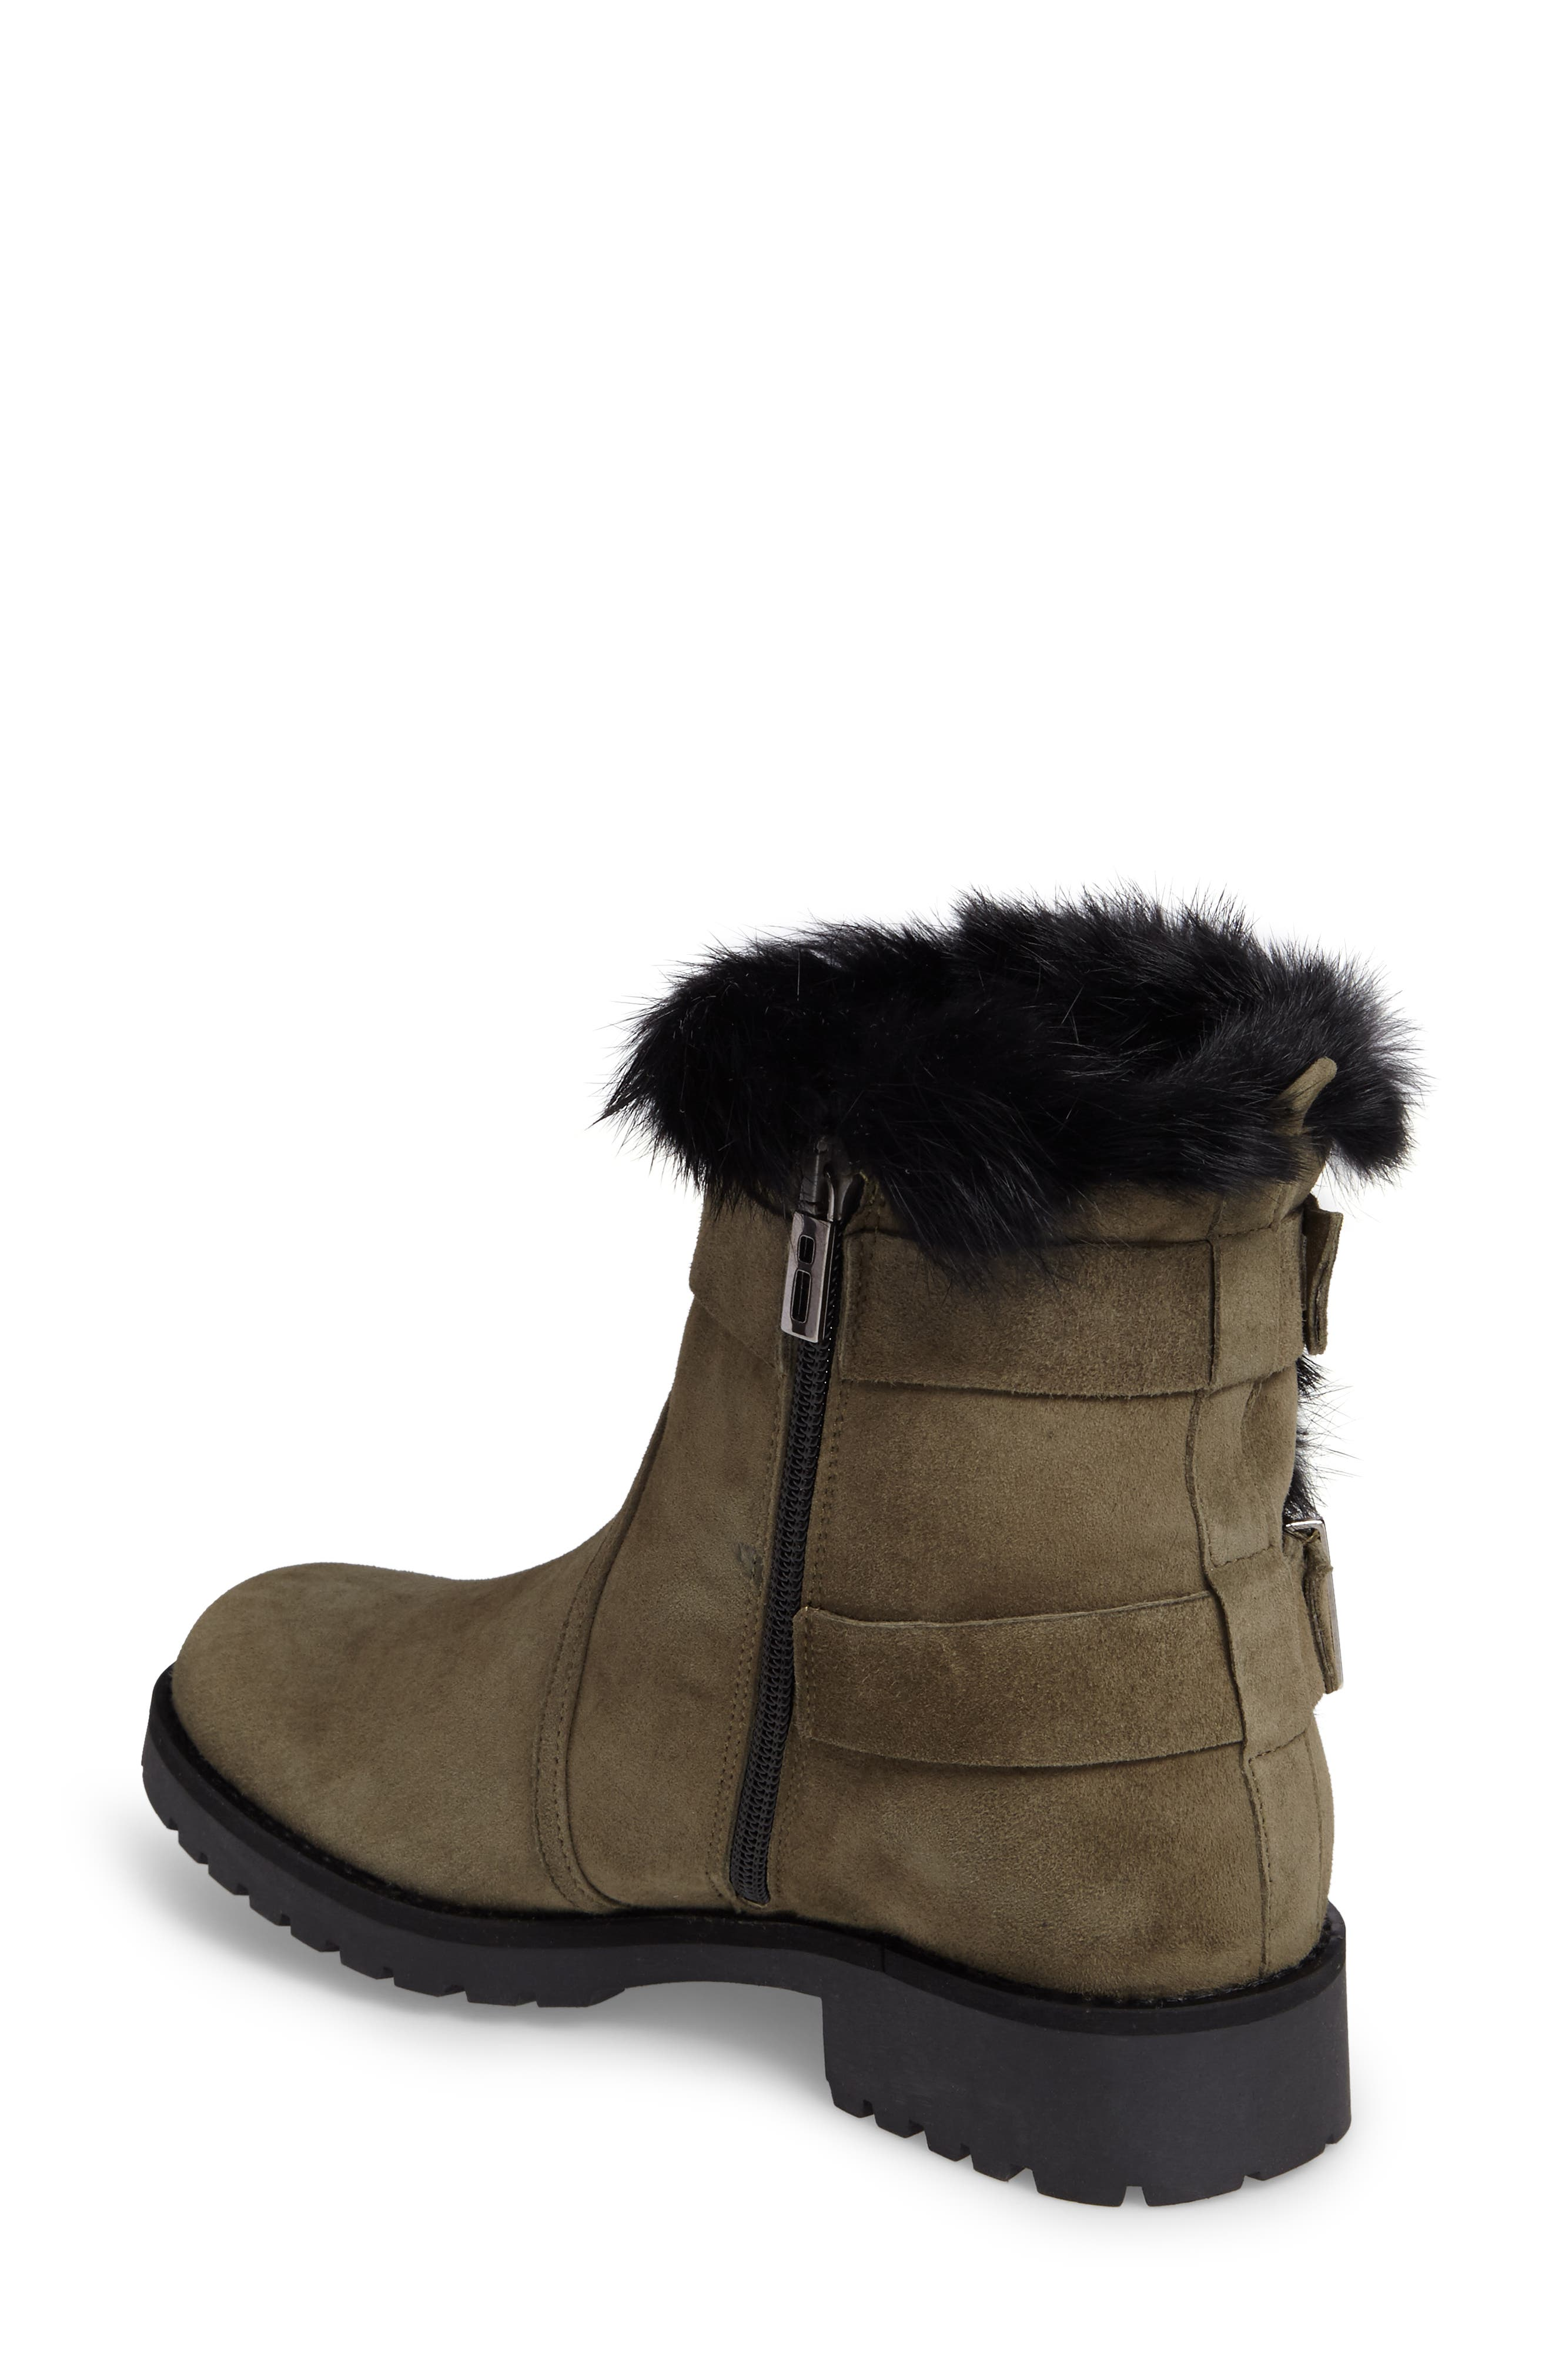 Alternate Image 2  - Charles David Rustic Genuine Rabbit Fur Cuff Boot (Women)